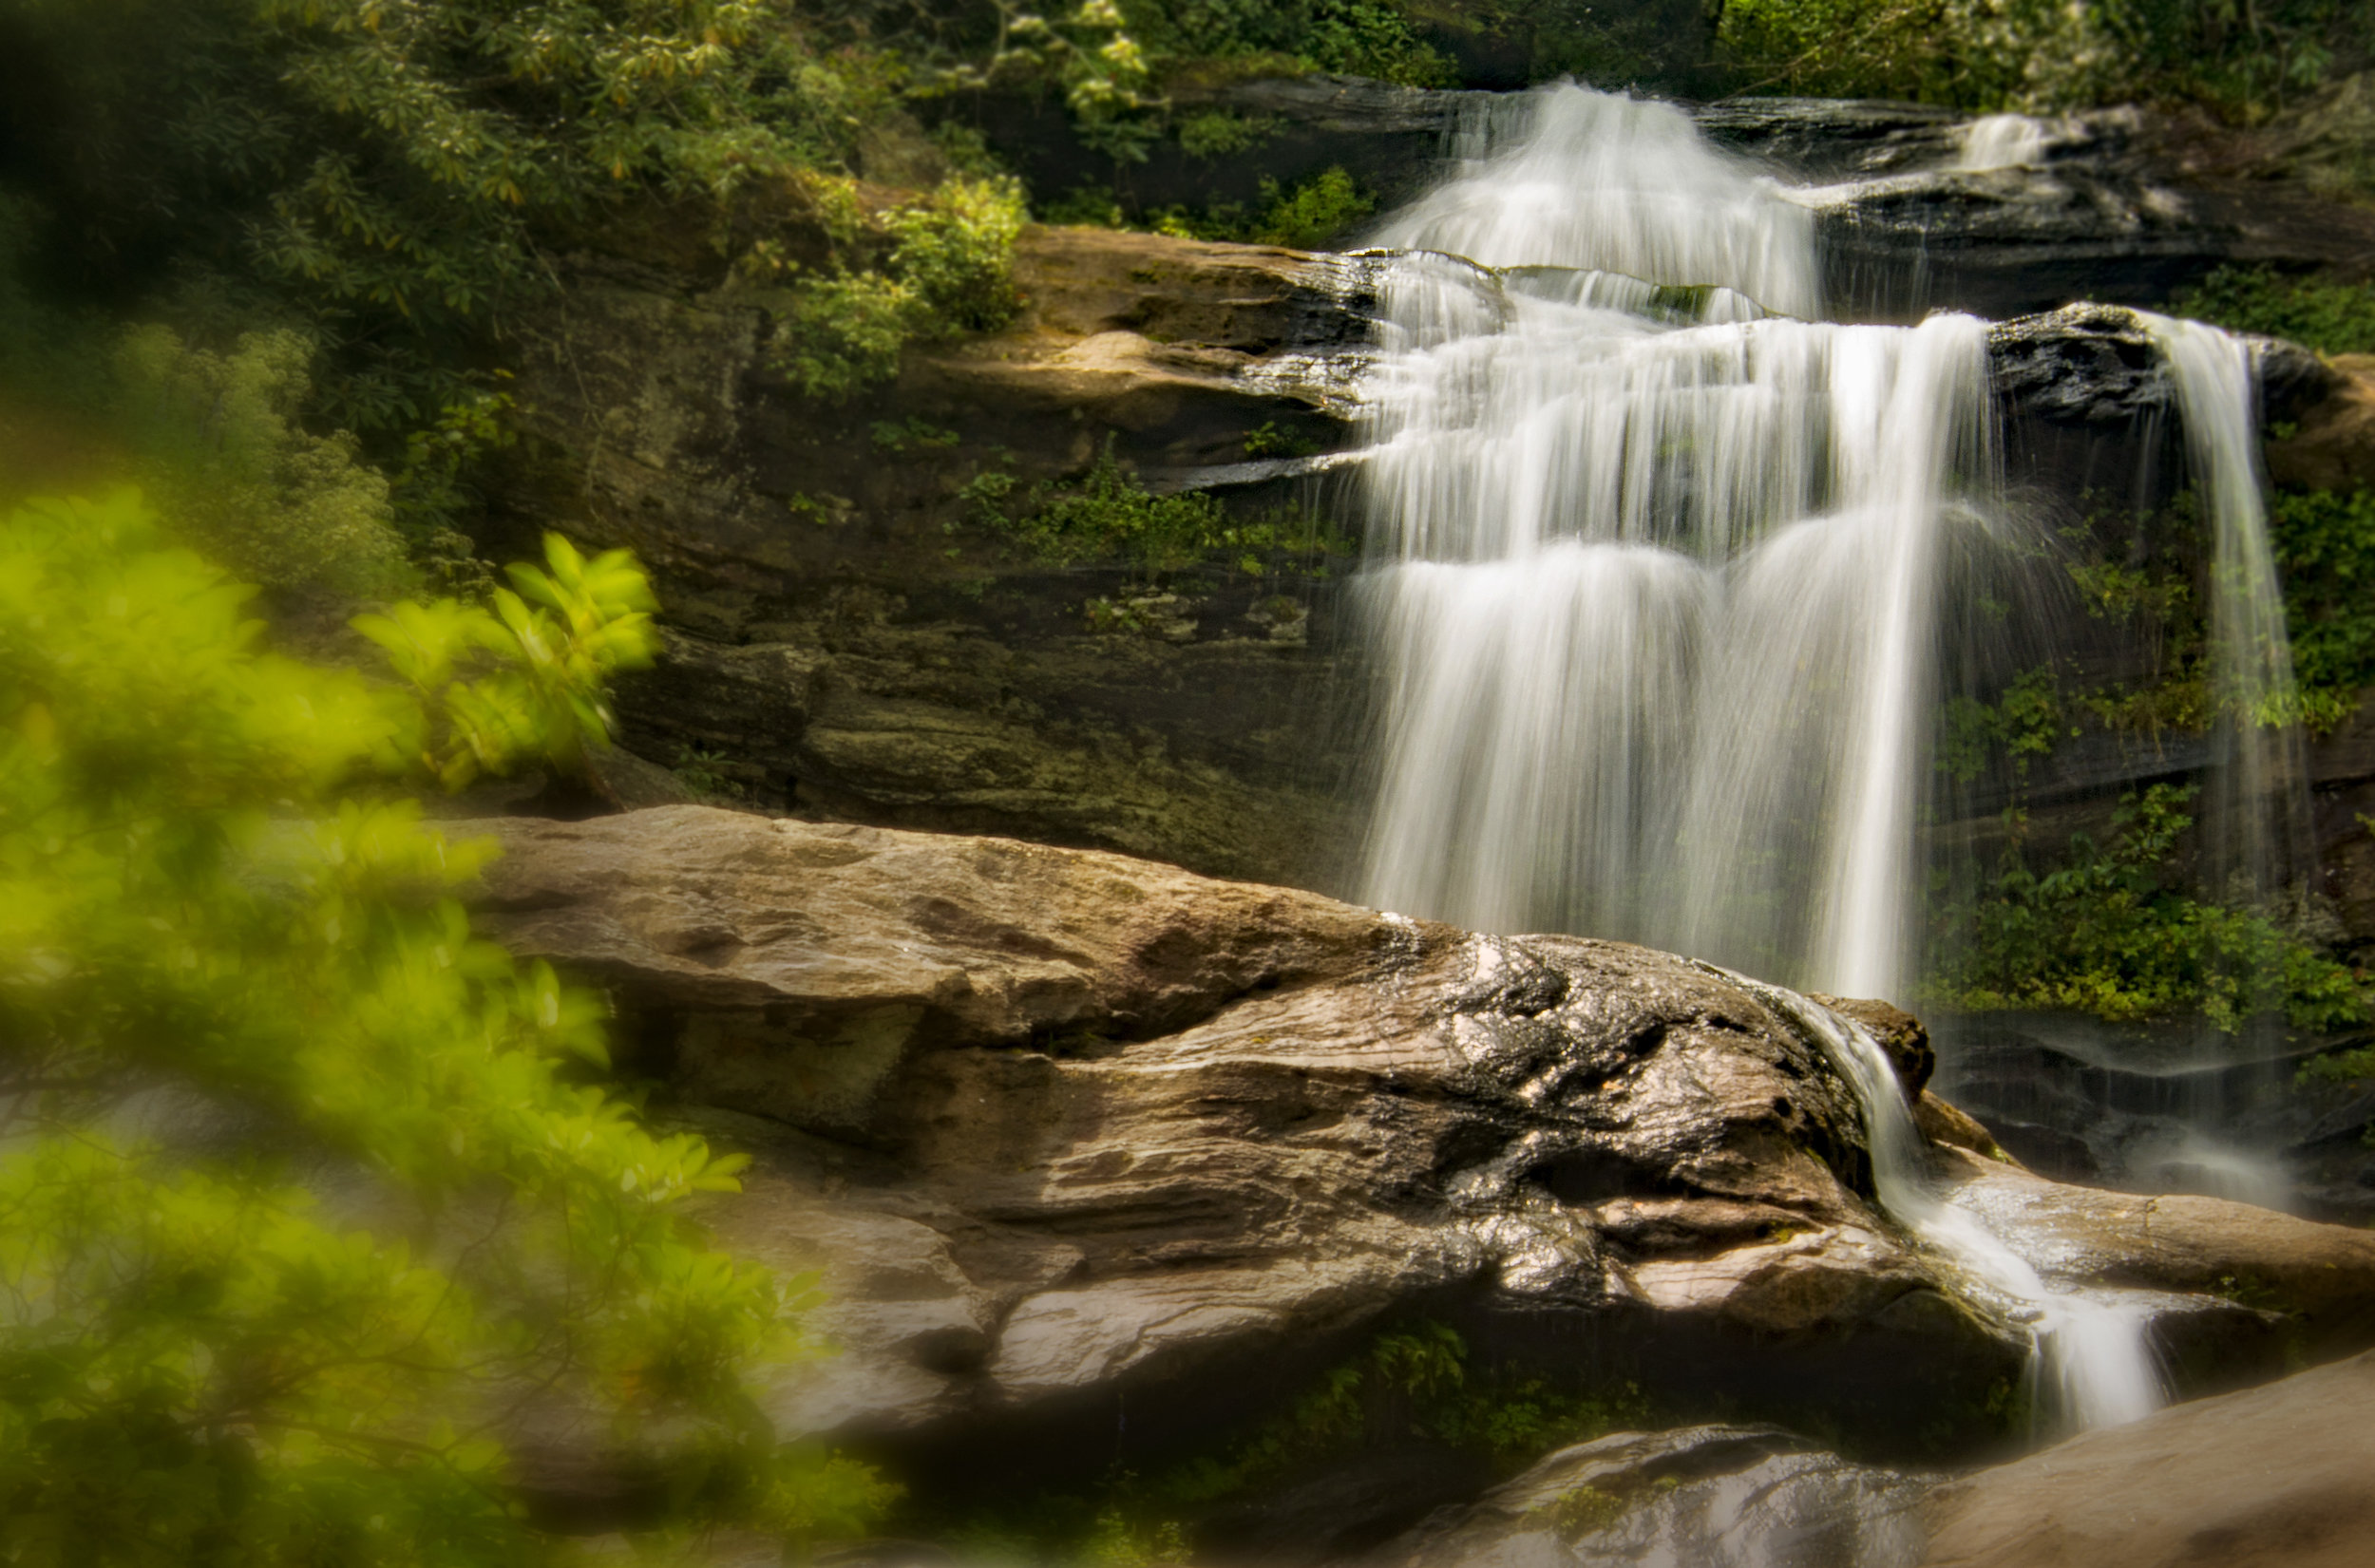 Holcomb Creek Falls Rabun County, GA August, 2017 Nikon D7100 Tamron 24-400 mm lens at 70mm ISO 100, f/29, 1/2 sec.